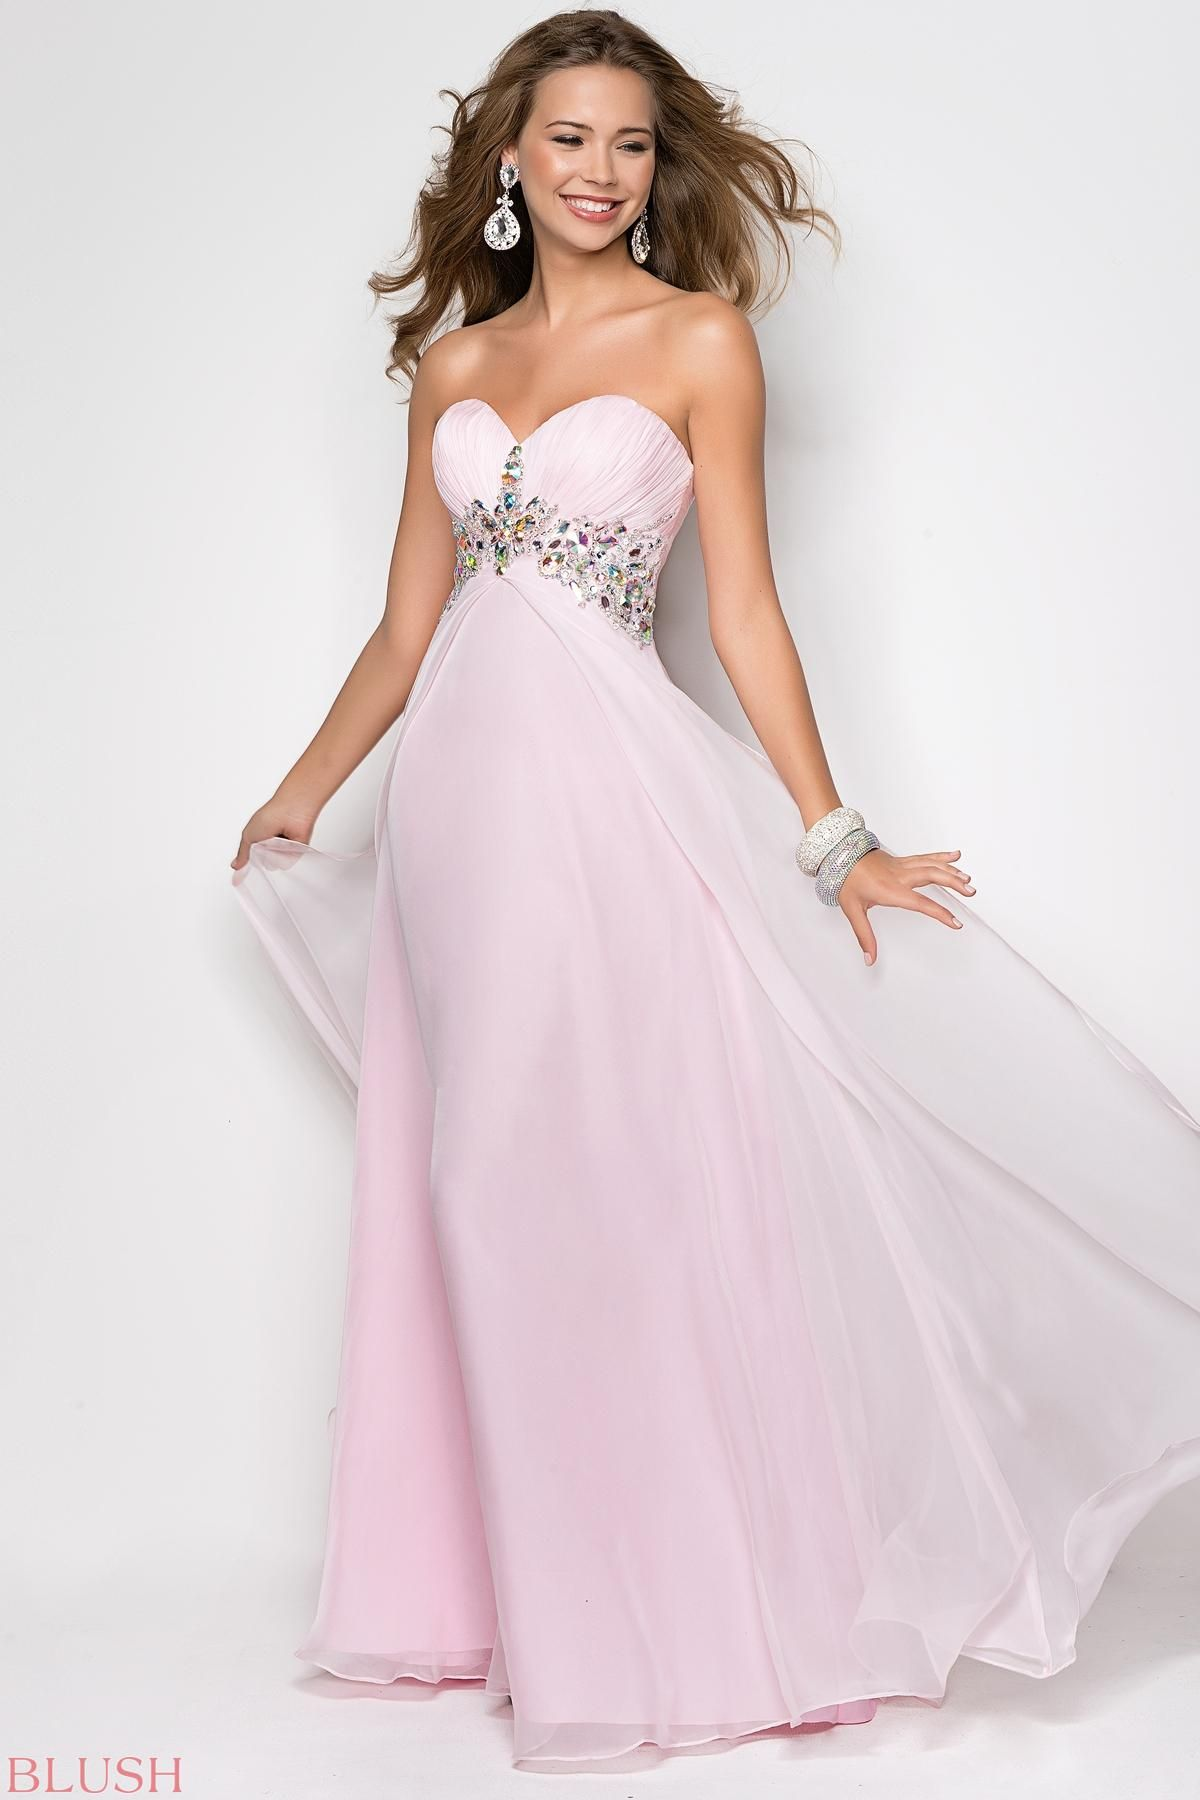 Dorable Prom Dress Stores In Sacramento Image - Colorful Wedding ...